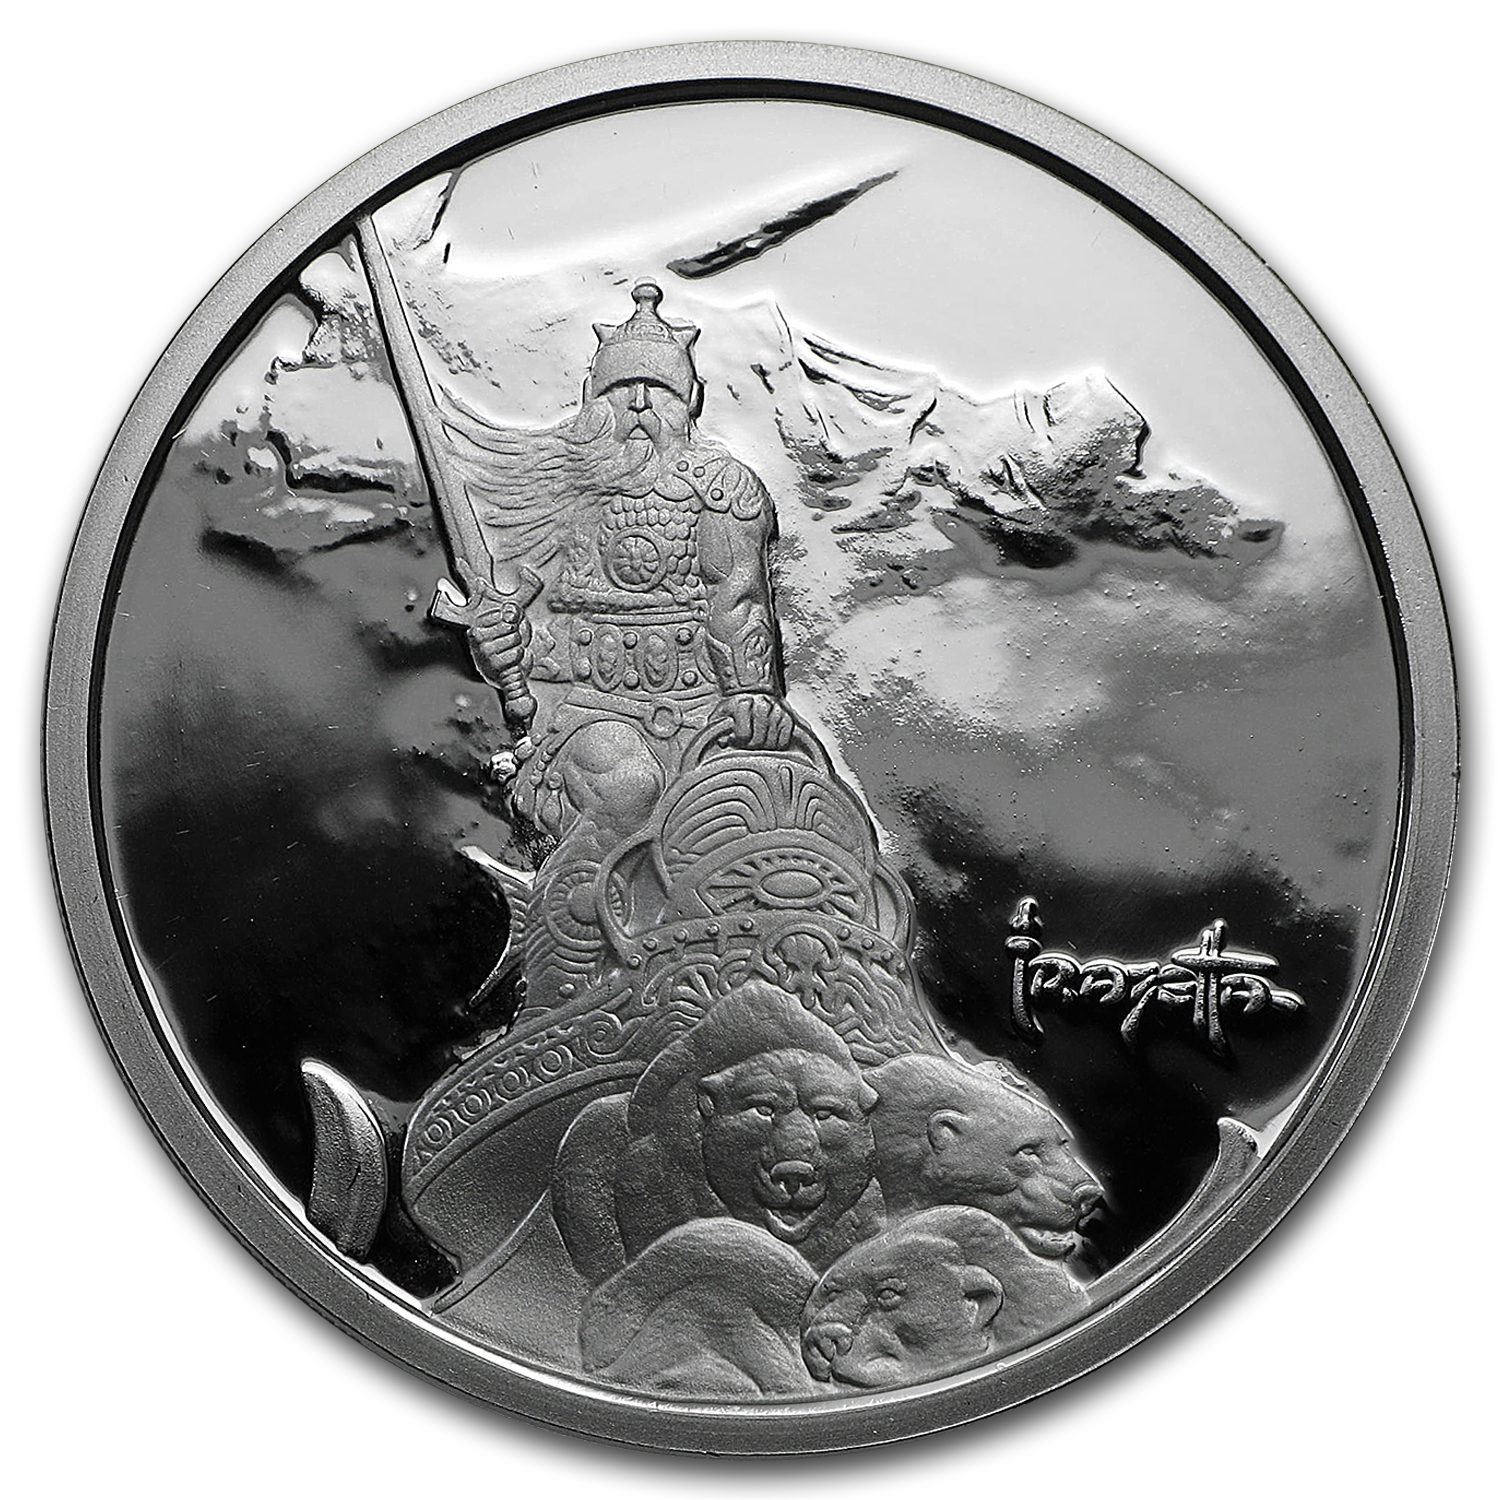 1 oz Silver Proof Round - Frank Frazetta (Silver Warrior)